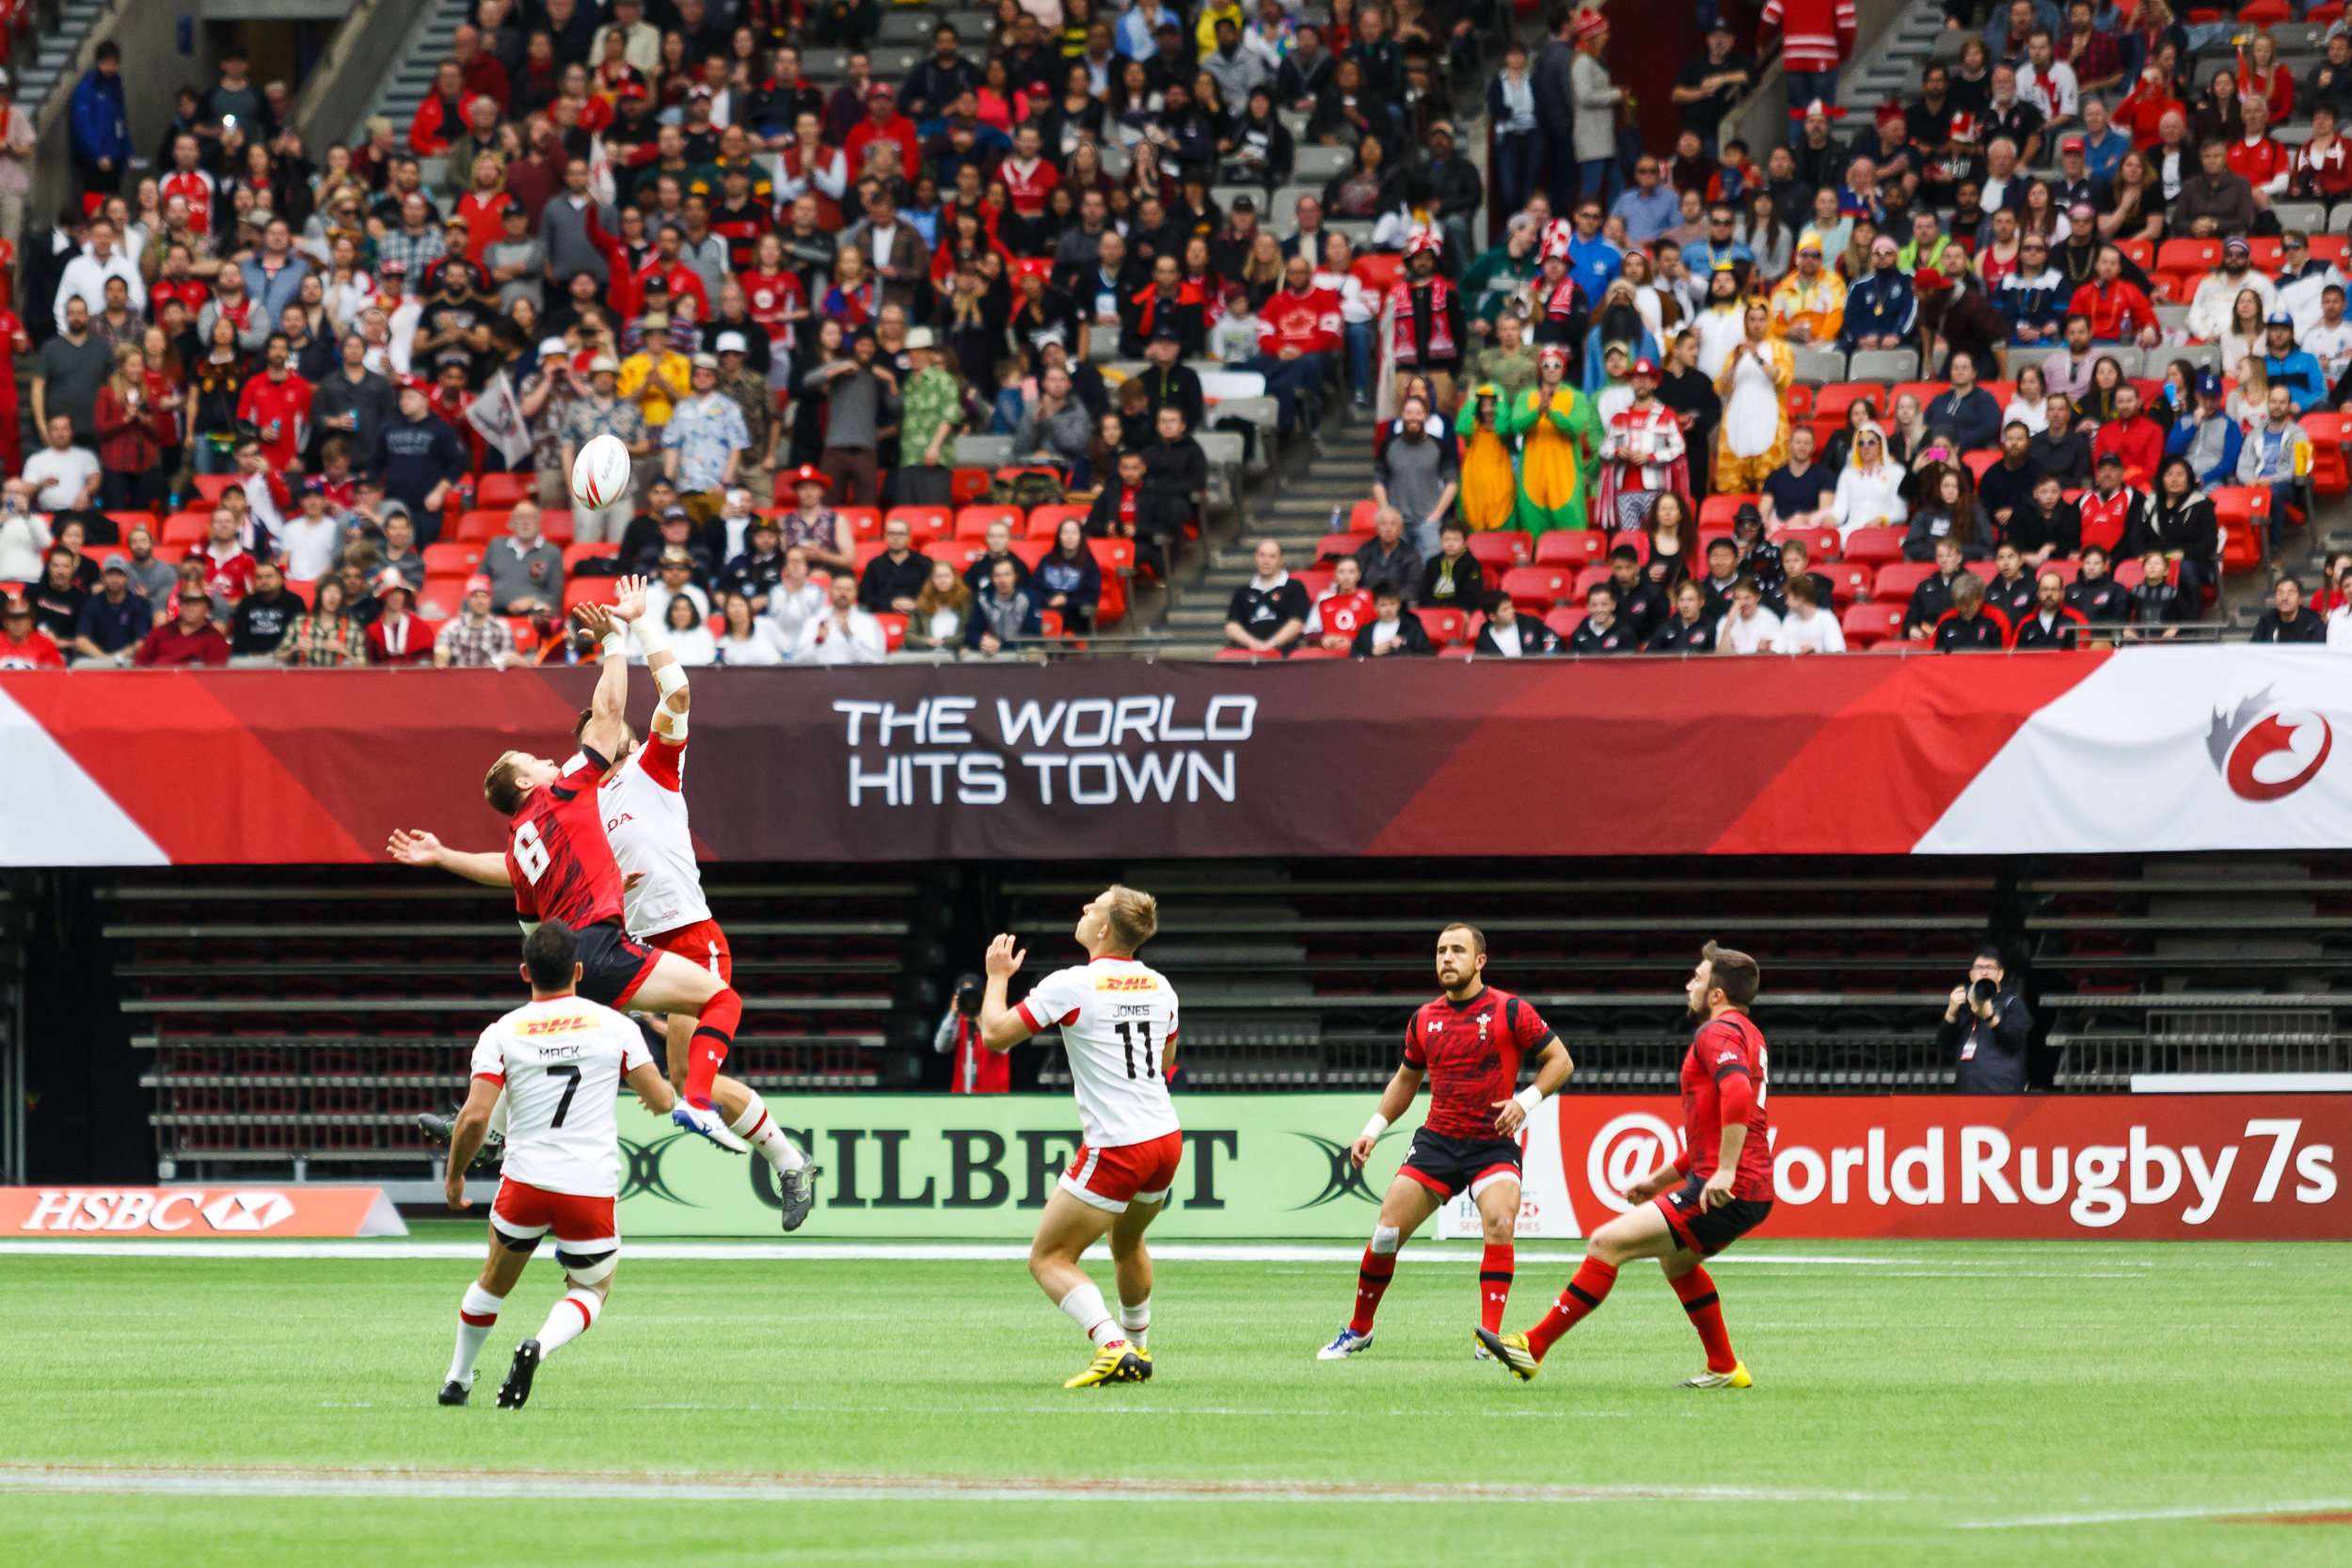 Canada-Rugby-Sevens-photo-4.jpg